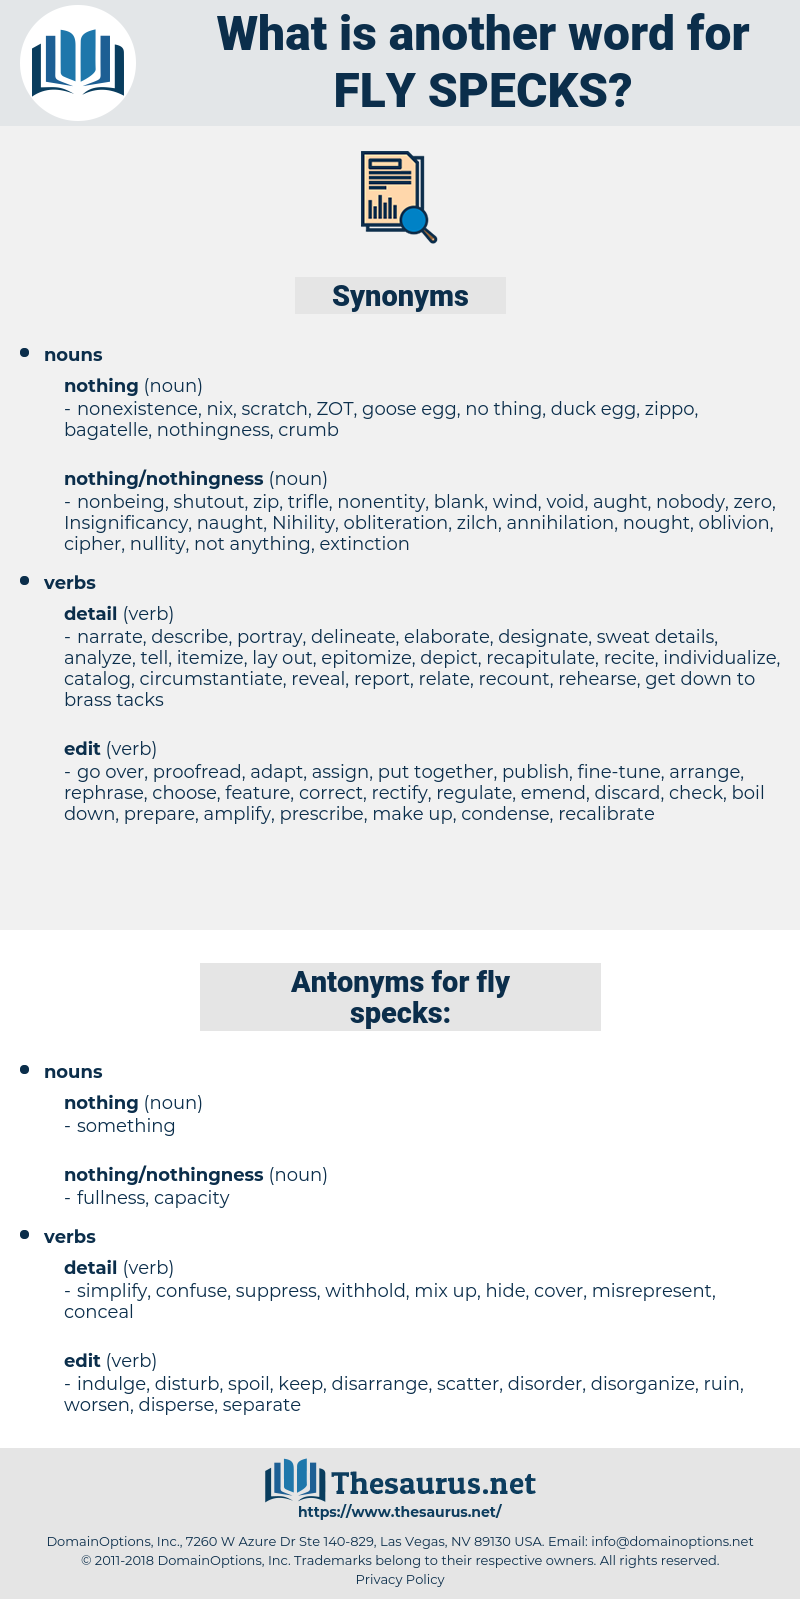 fly specks, synonym fly specks, another word for fly specks, words like fly specks, thesaurus fly specks